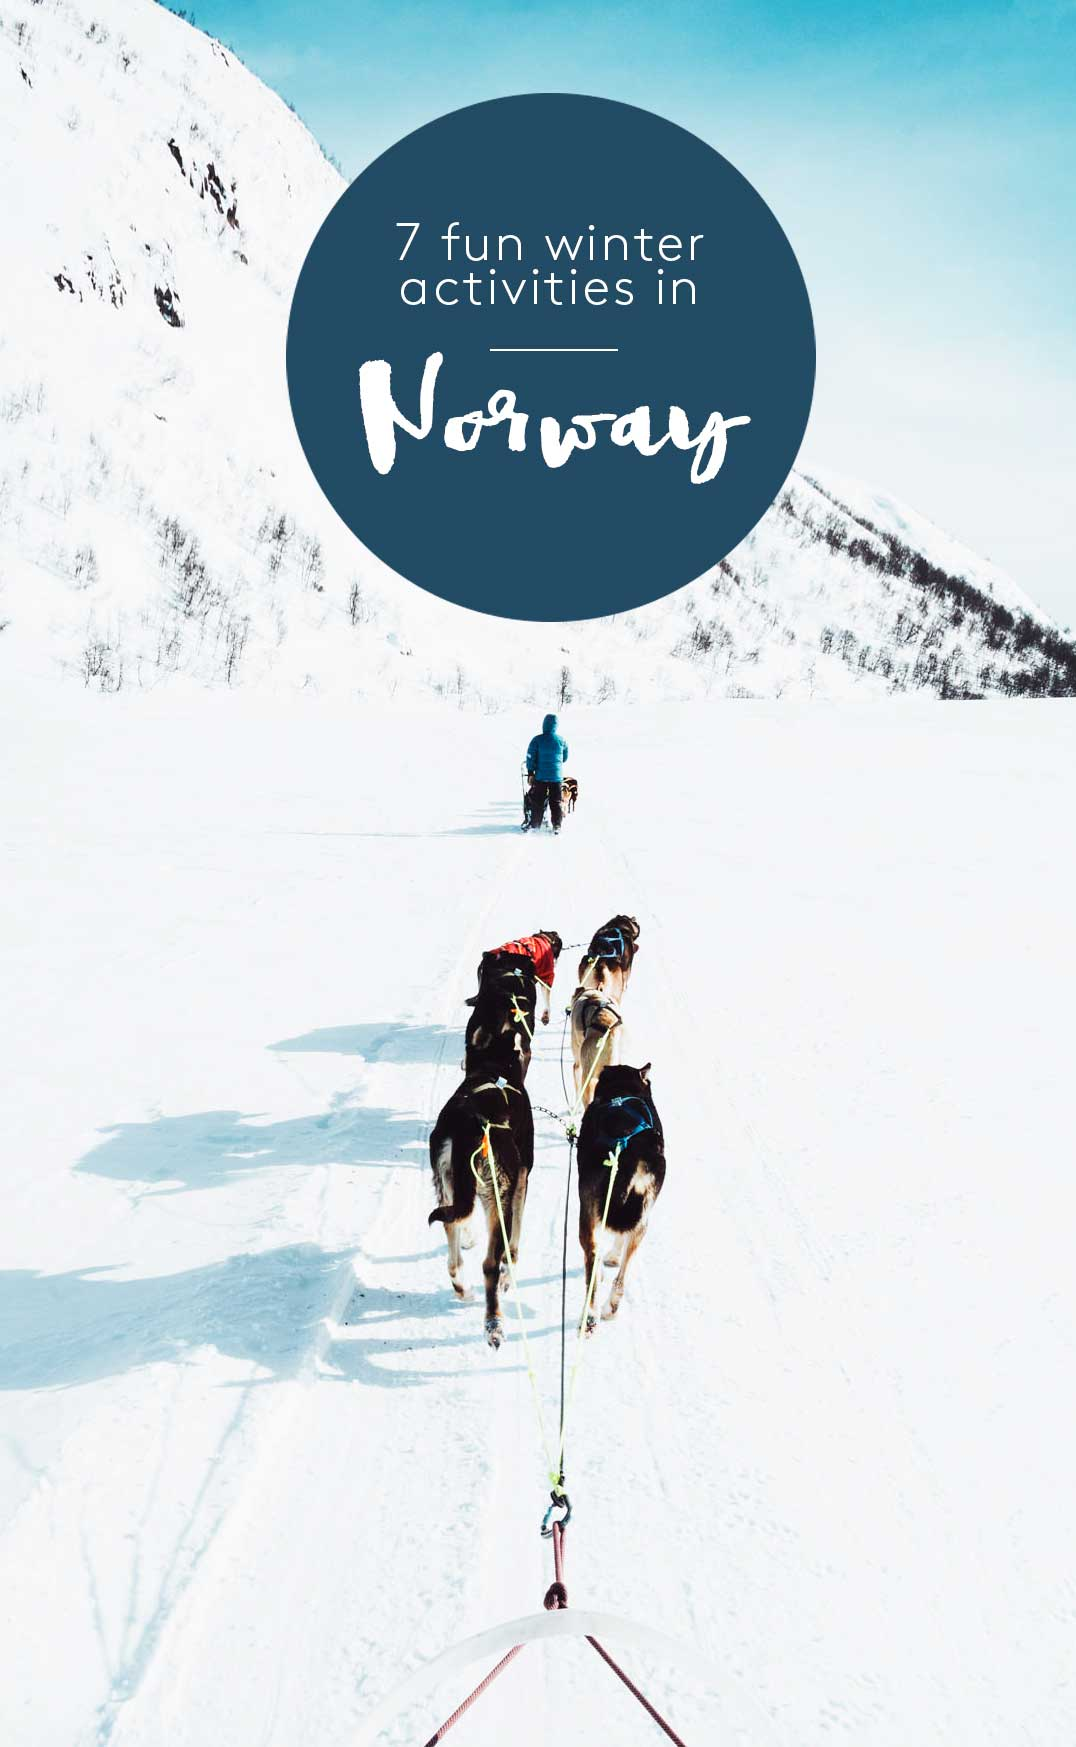 7 fun winter activities in Hovden NorwaySkiing in Norway - and 5 other winter adventures in the mountain village Hovden